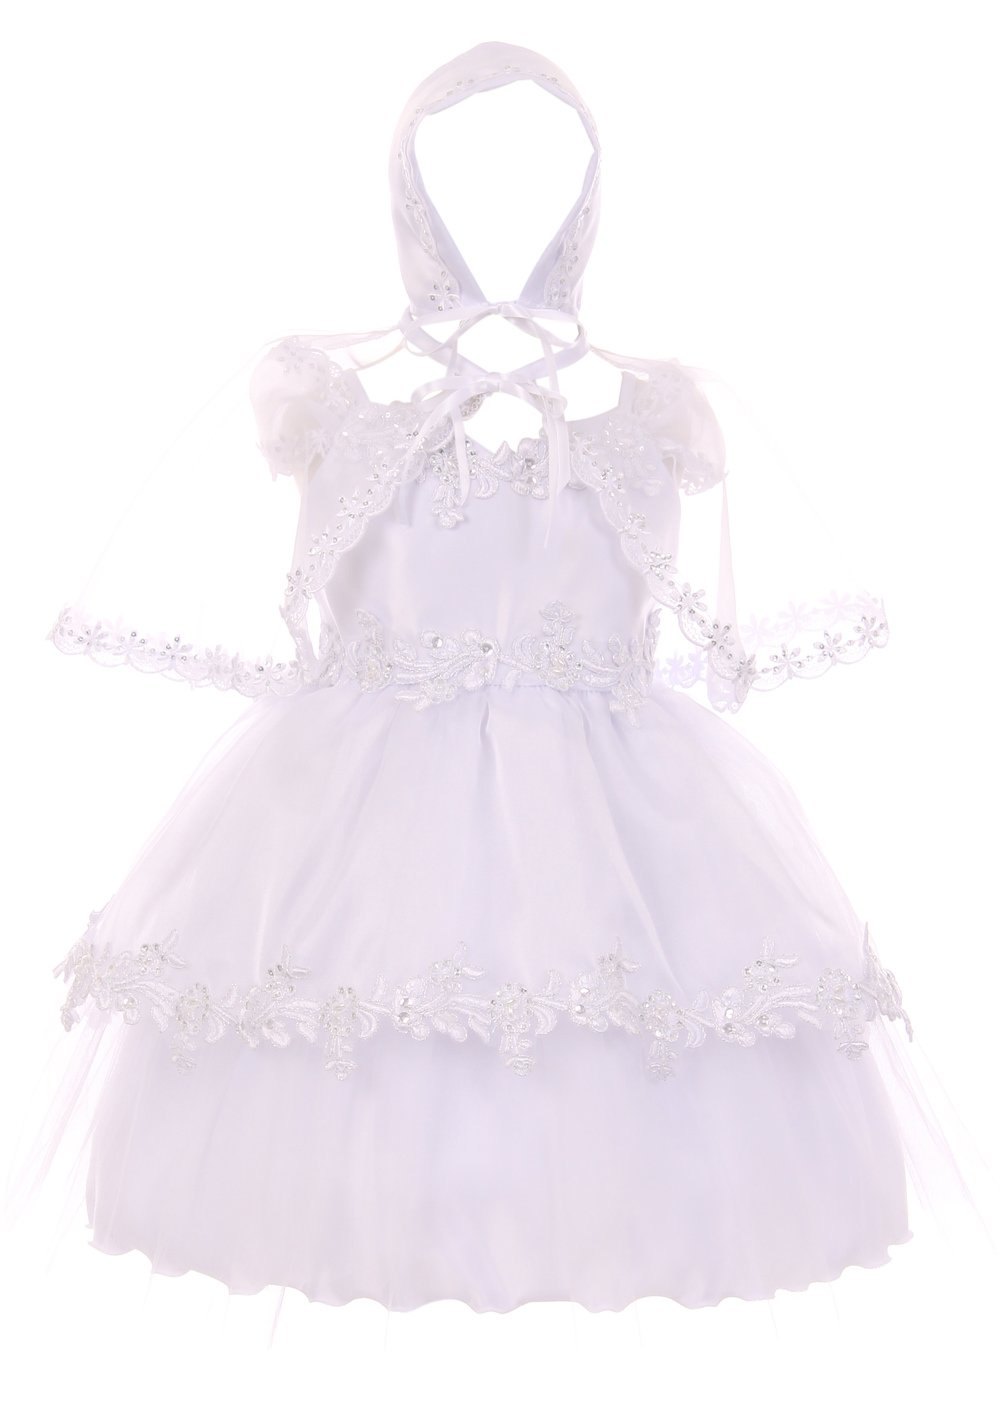 Aki_Dress Simple Elegant Infant Baptism Dress with Bonnet & Cape